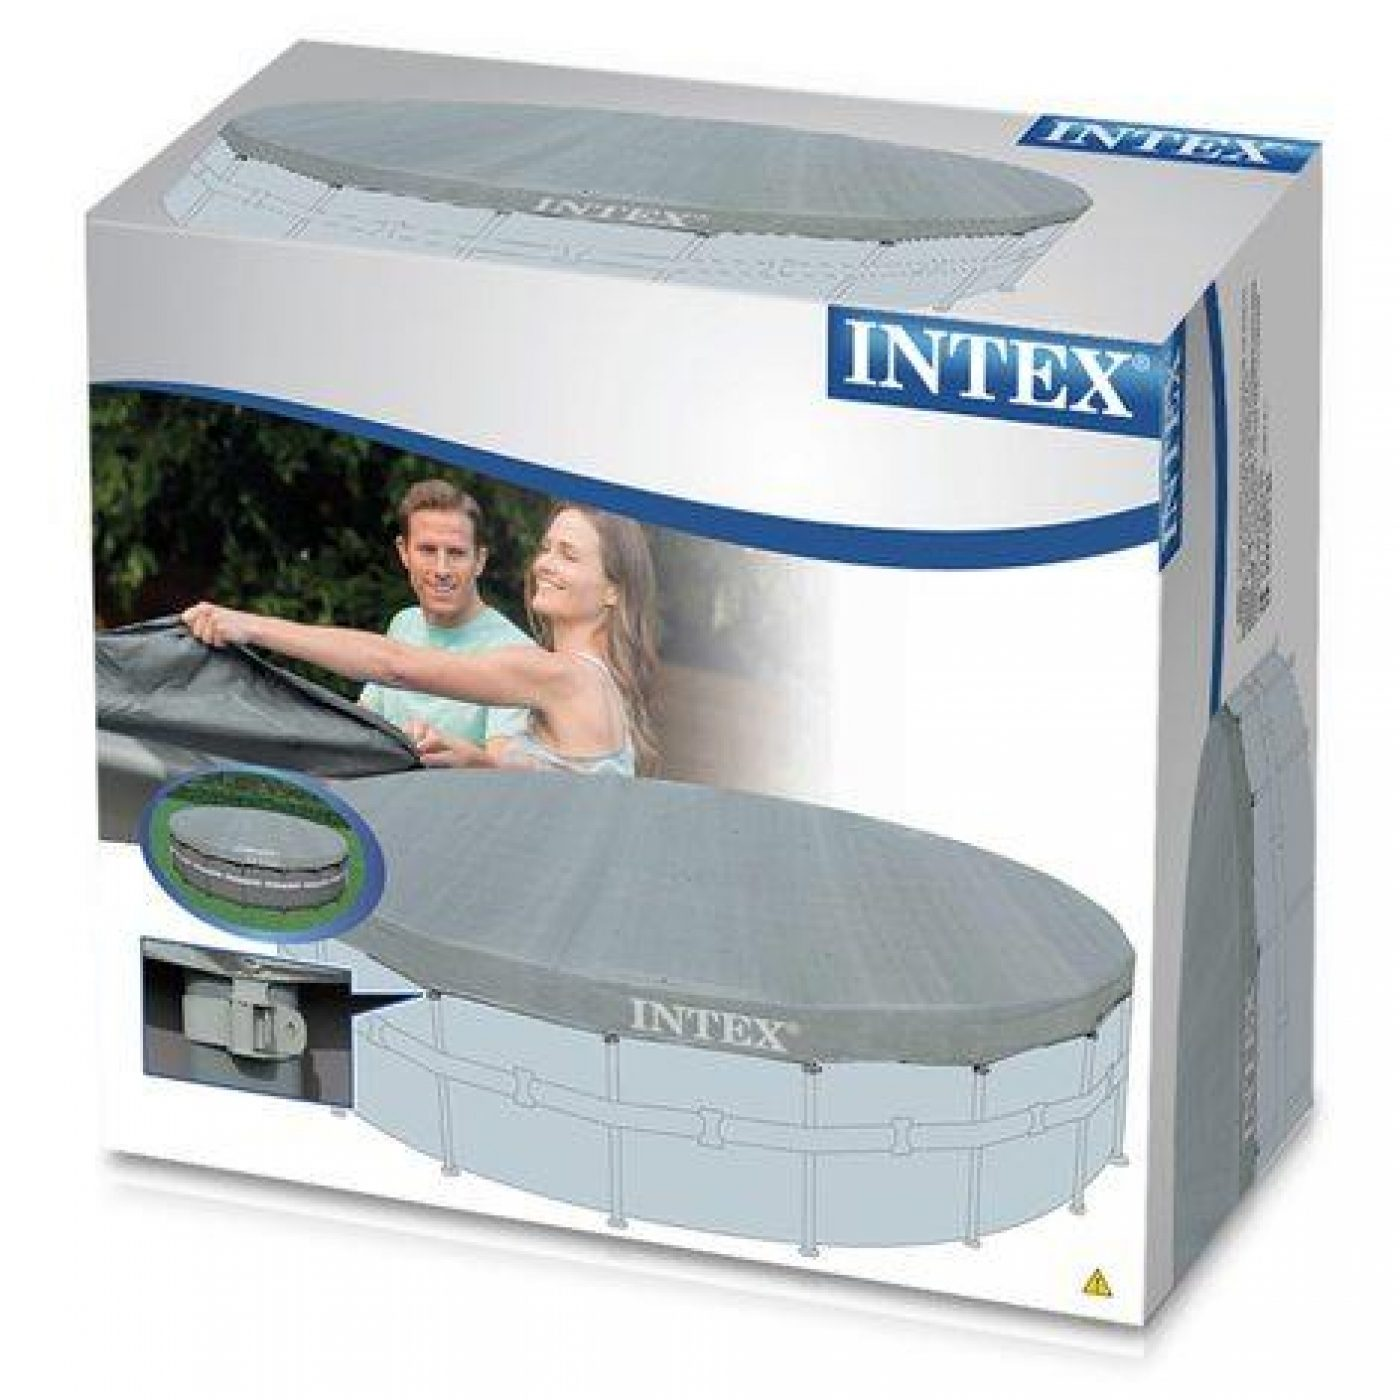 Piscina Intex 6000 Litros Medidas Toldo Intex Piscina Metálica Ultraframe Metal 549 Cm